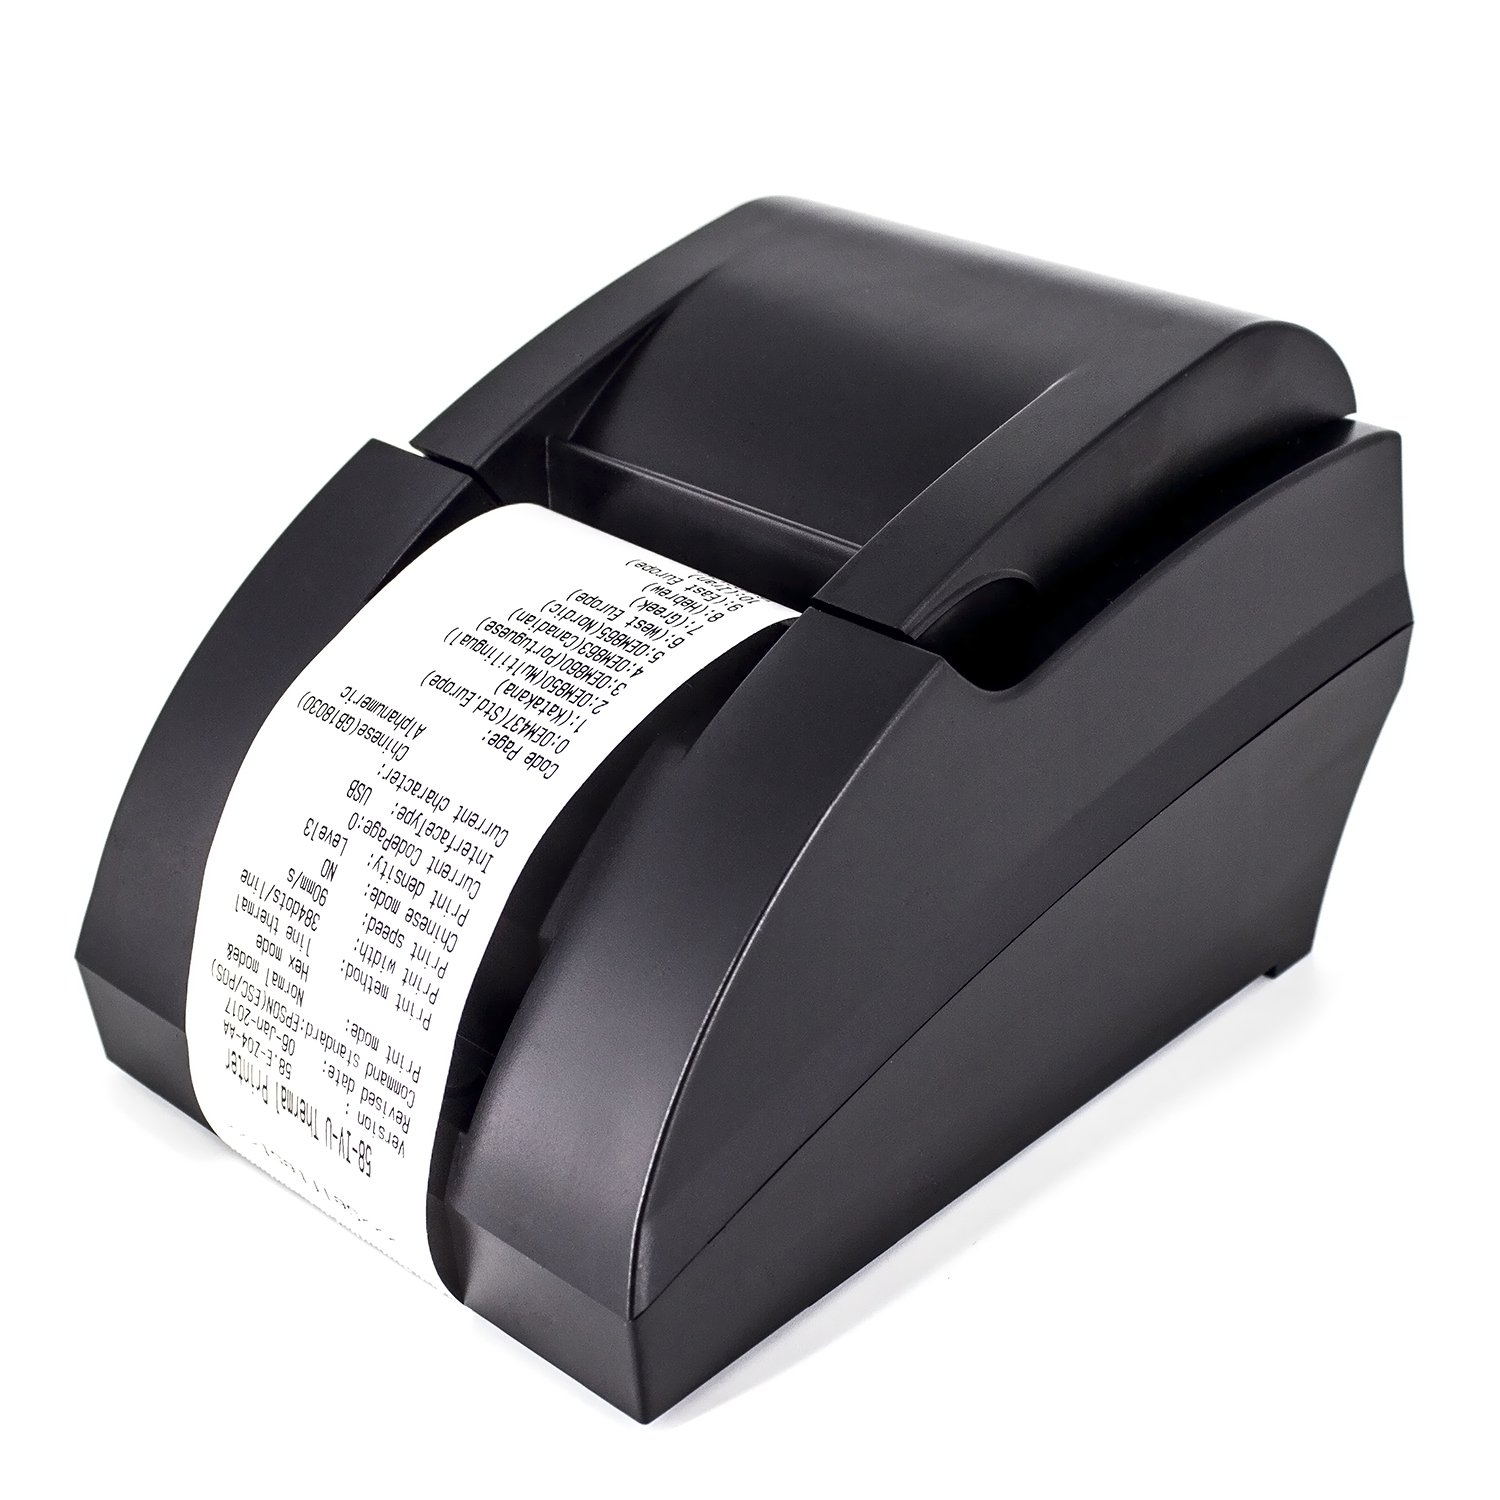 USB Thermal Receipt Printer,Symcode Ethernet/LAN, Serial Port - Auto Cutter - Cash Drawer Port - Paper Width 2 1/4'' (58mm) - Works on Windows XP/Vista/7/8/8.1/10 Uses